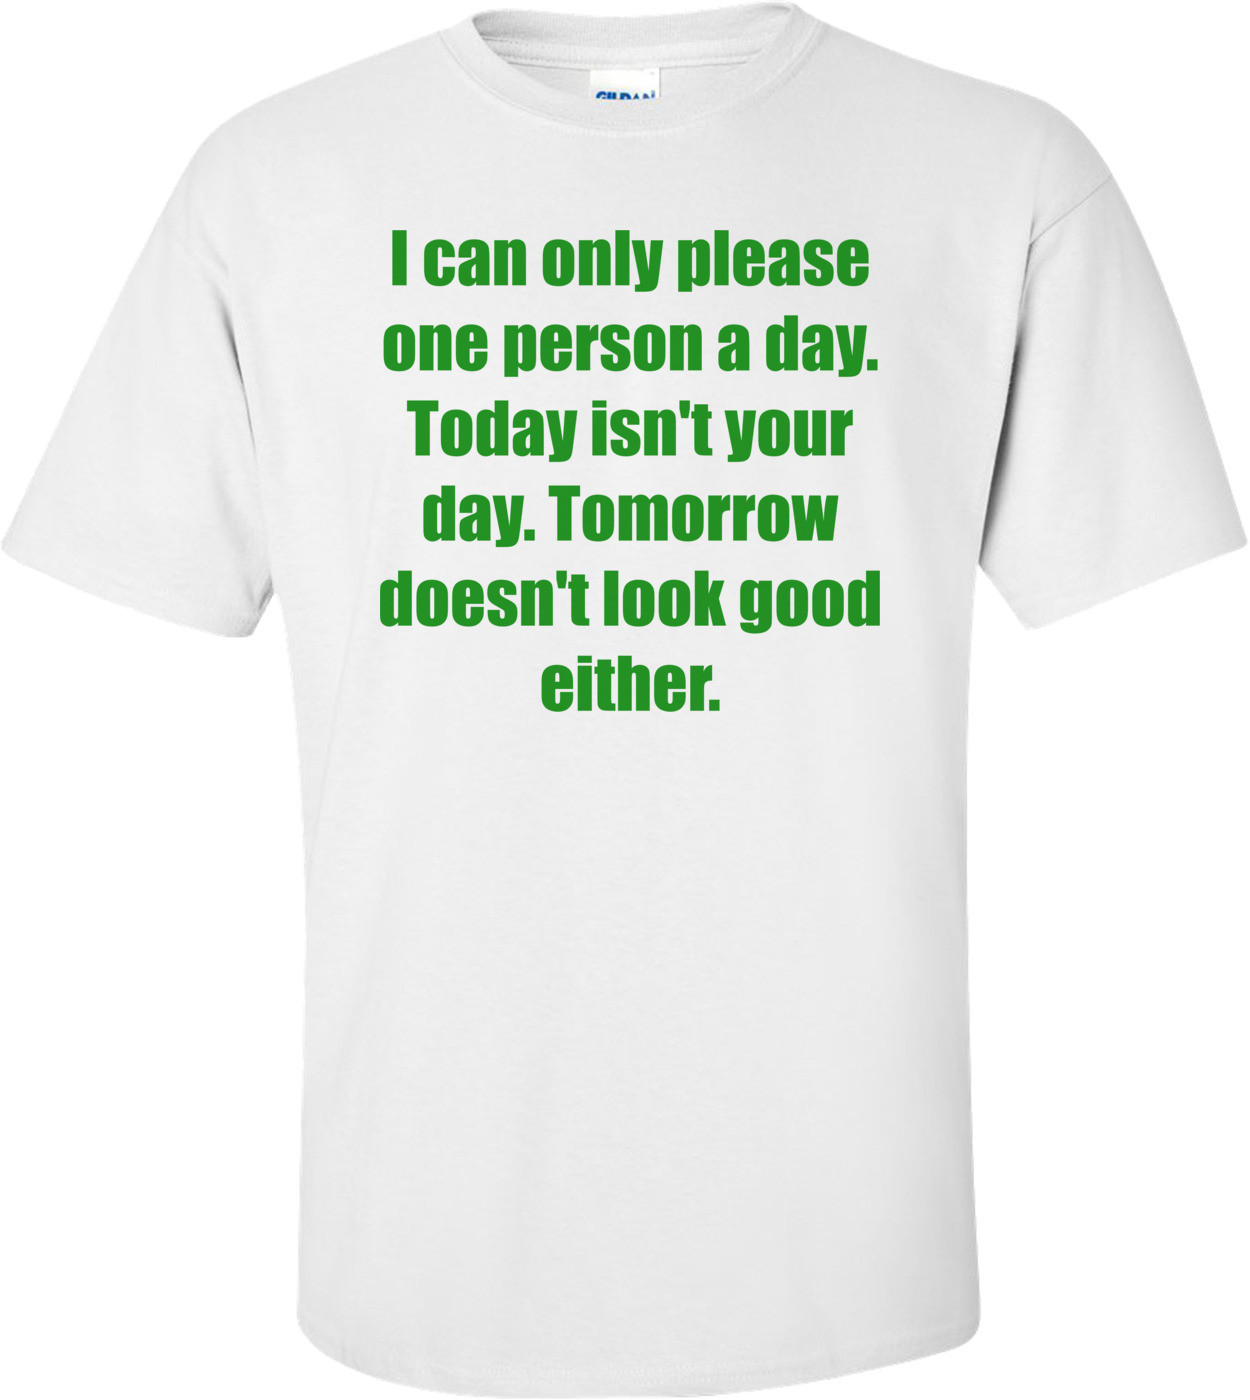 I can only please one person a day. Today isn't your day. Tomorrow doesn't look good either. Shirt